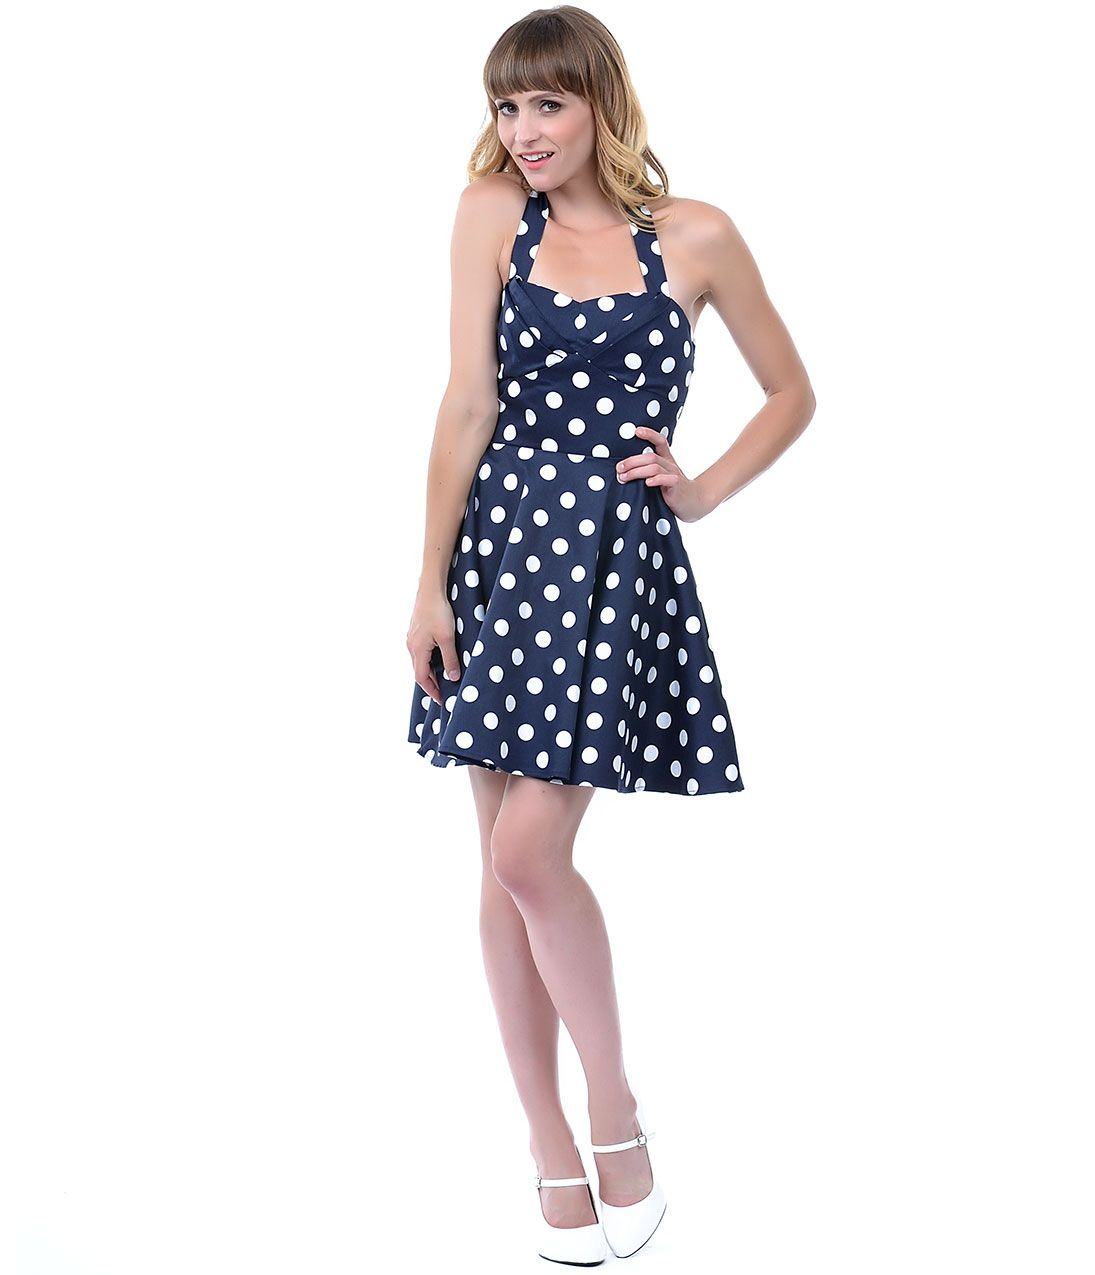 78 Best images about Navy and White Dresses on Pinterest - Navy ...